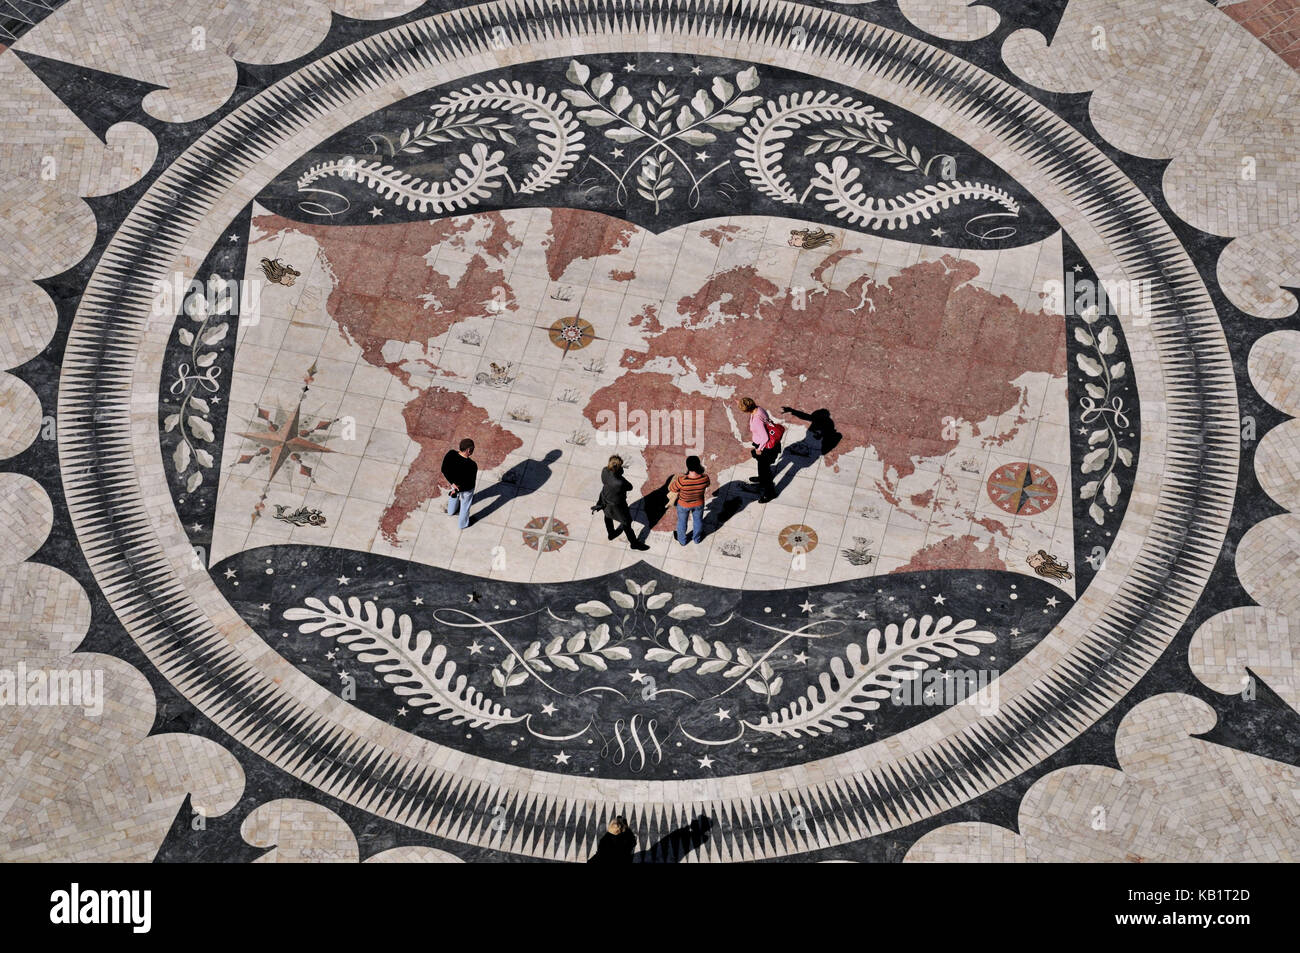 Portugal, Lisbon, view at the compass rose and seafarer's map of the world in front of the monument of the discoveries - Stock Image